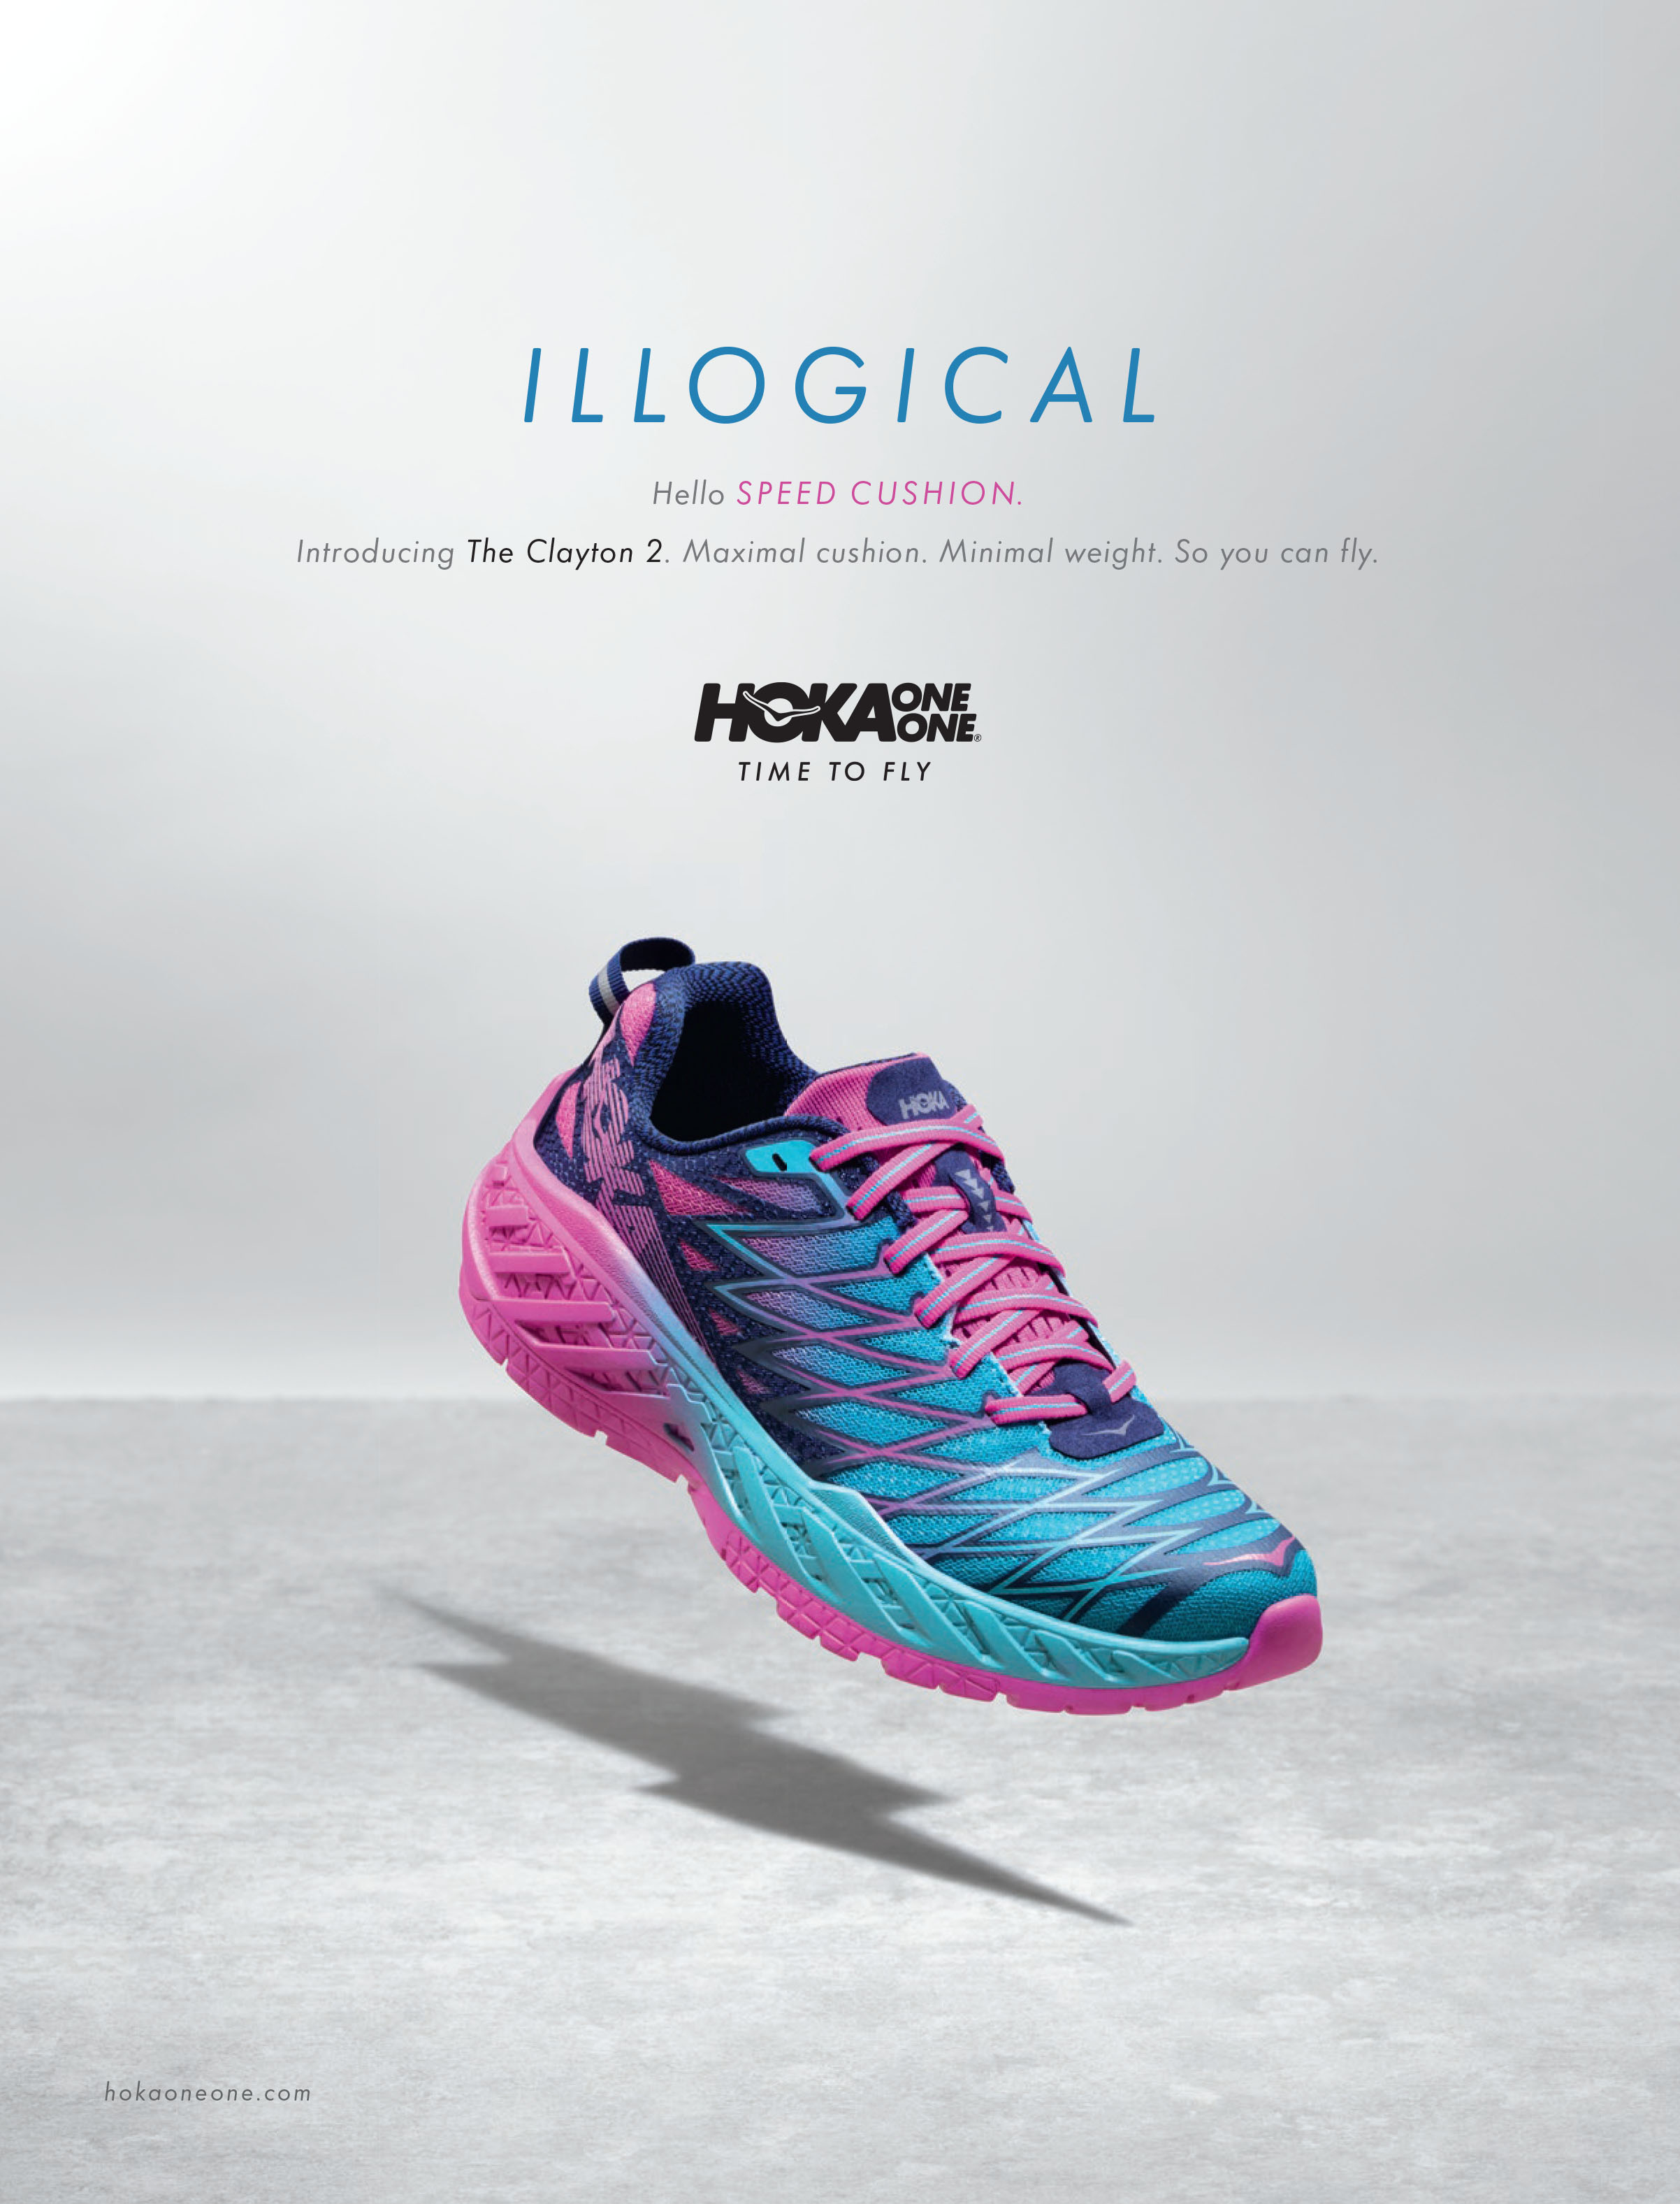 illogical fast hoka one one clayton 2 shoe